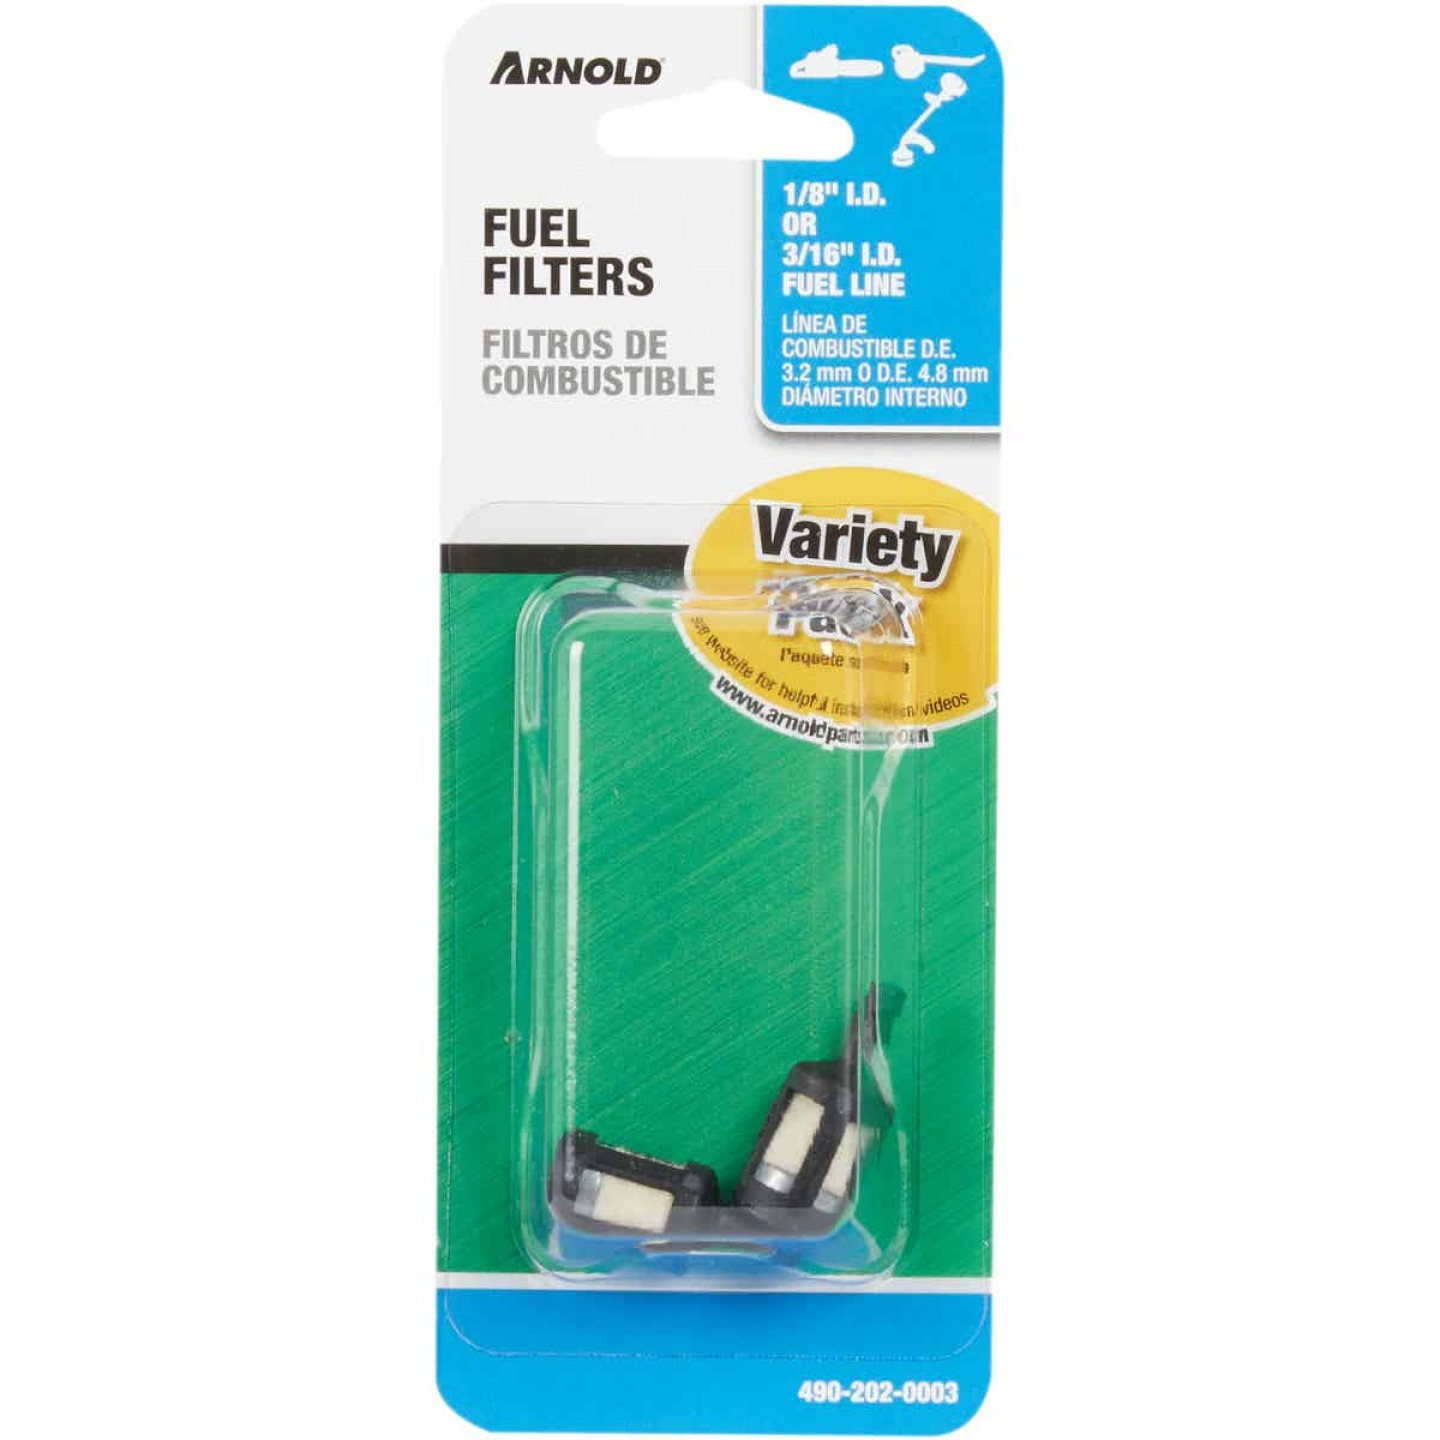 Arnold 2-Cycle Fuel Filter (2 Pack) Image 2